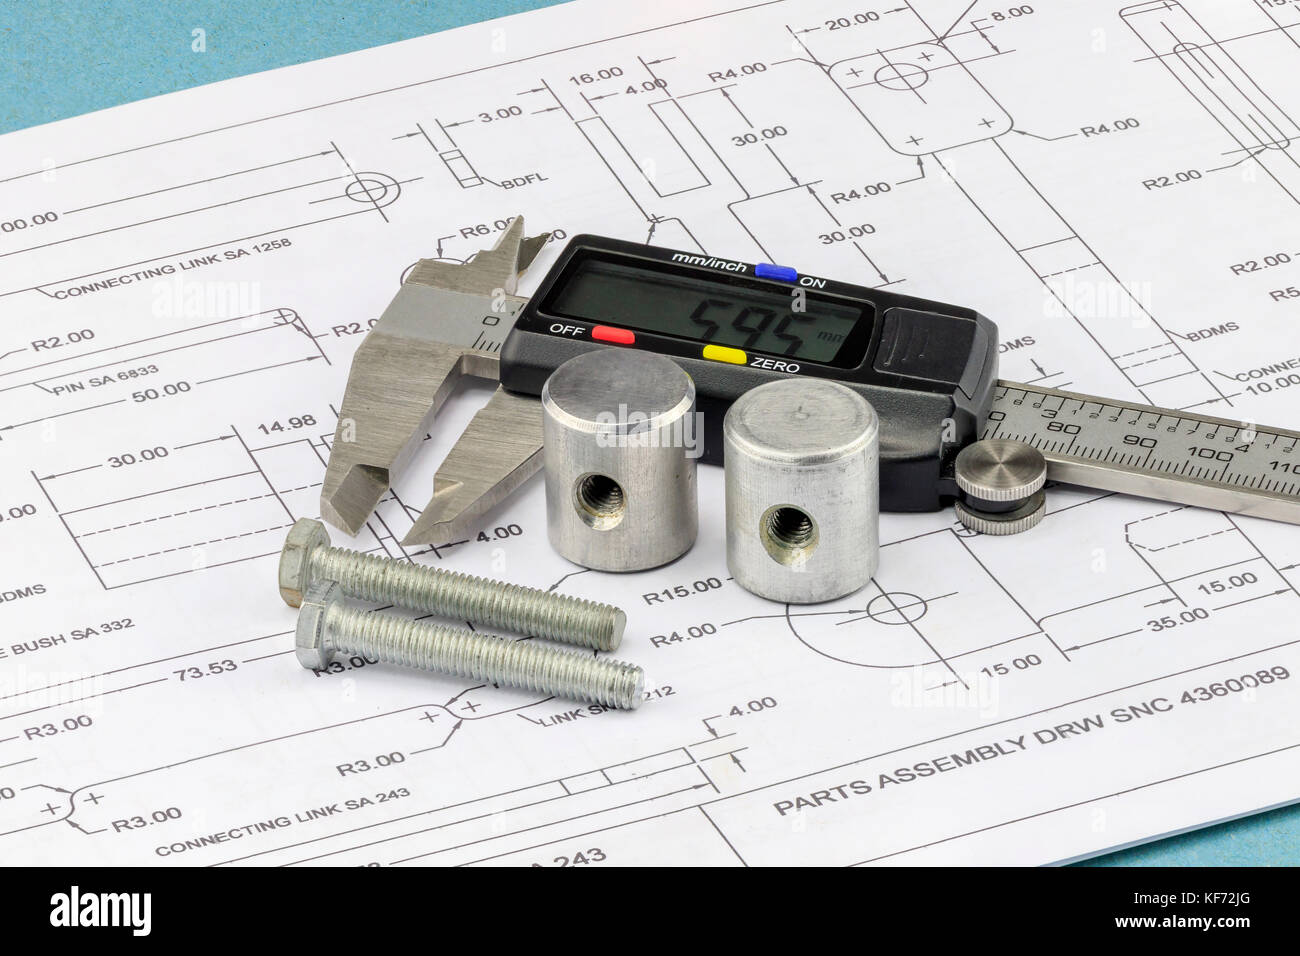 Vernier Callipers, bolts and parts placed on an engineering drawing - Stock Image